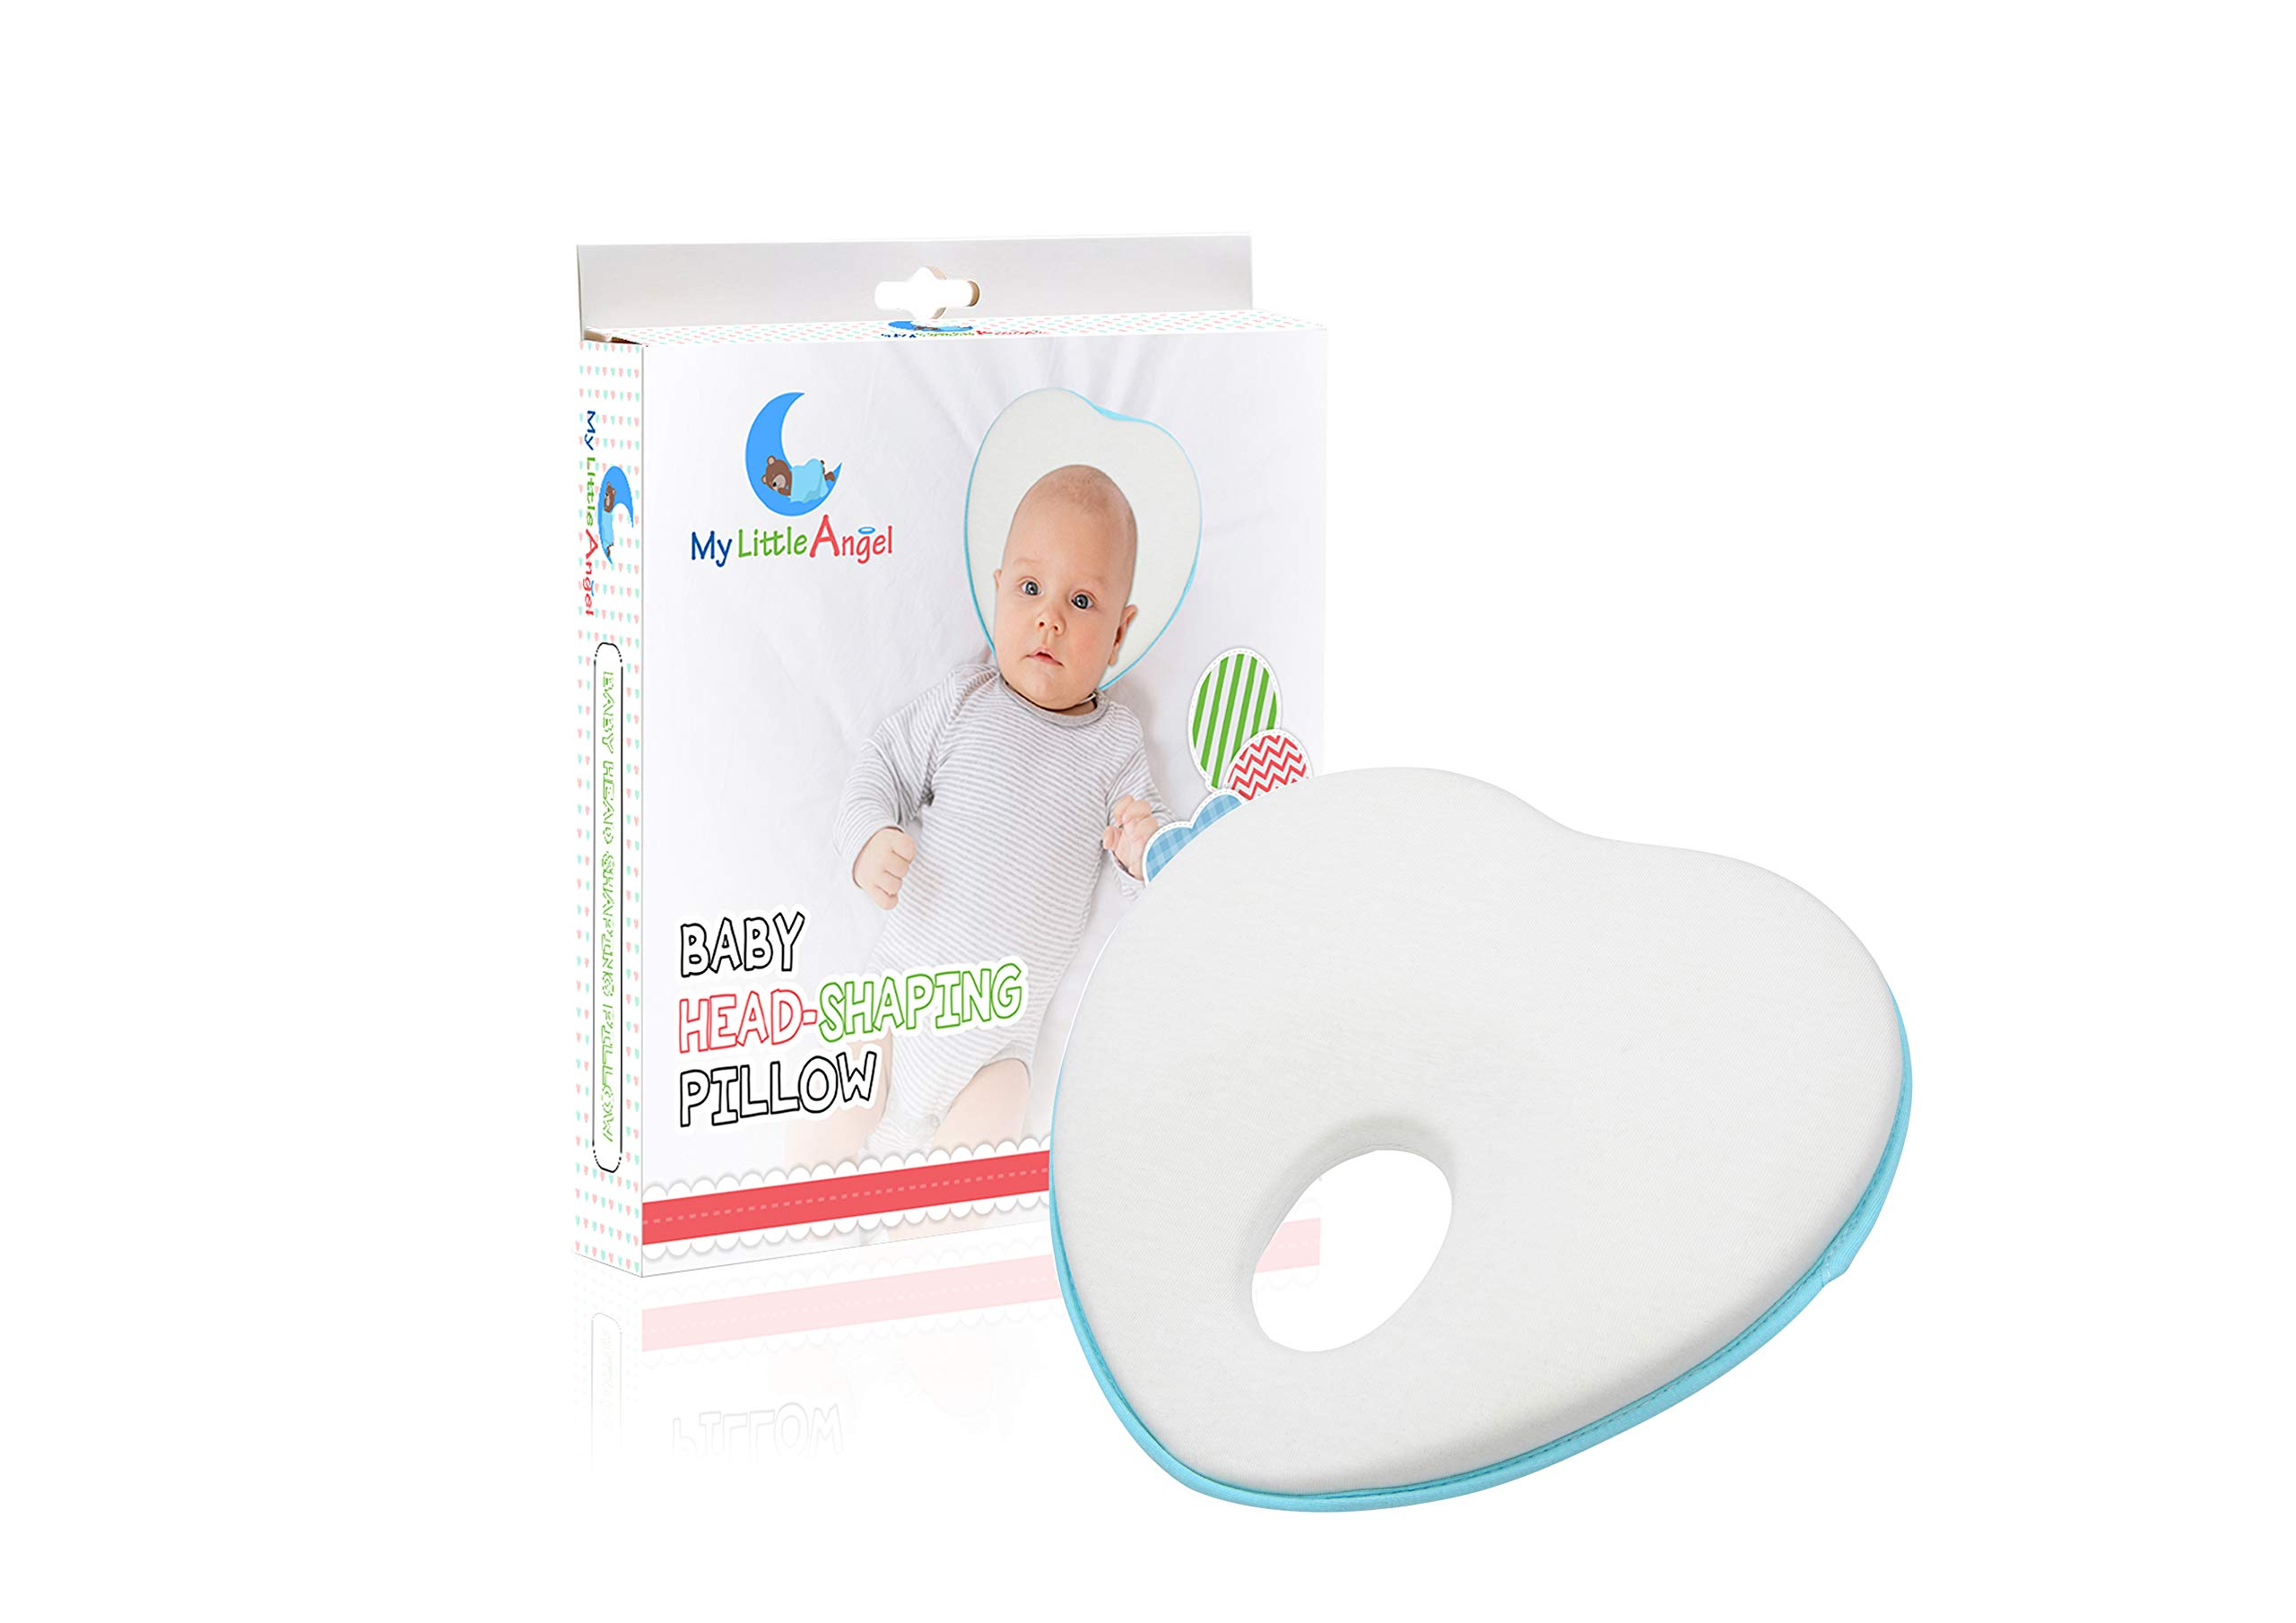 Newborn Baby Head Shaping Pillow | Flat Head Syndrome Prevention | Memory Foam Cushion | Prevent Plagiocephaly for Infants & Newborn | Baby Shower Gifts - by My Little Angel by My Little Angel